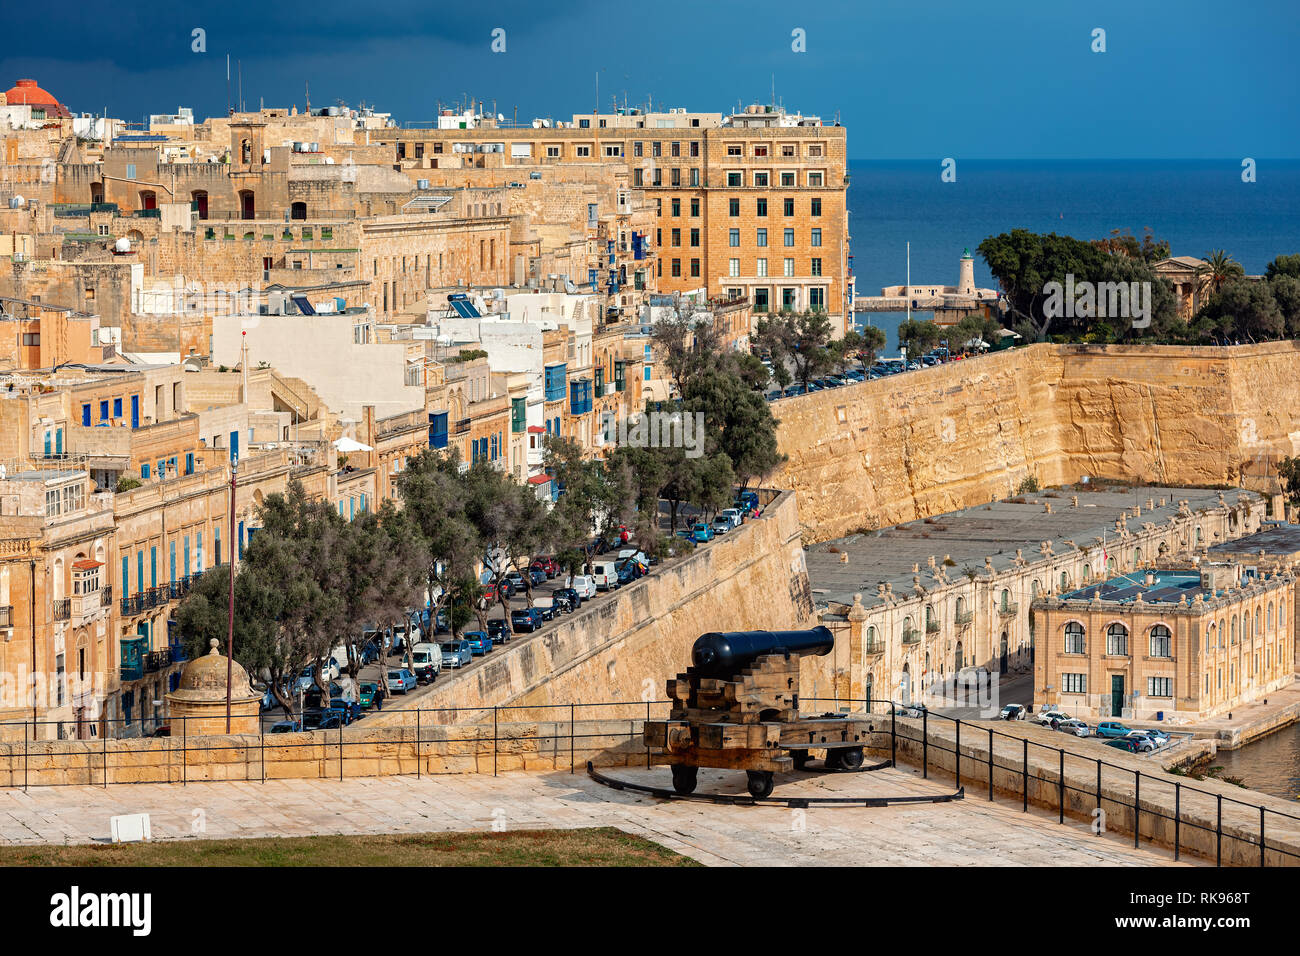 View of old cannon on bastion as city of Valletta on background. - Stock Image